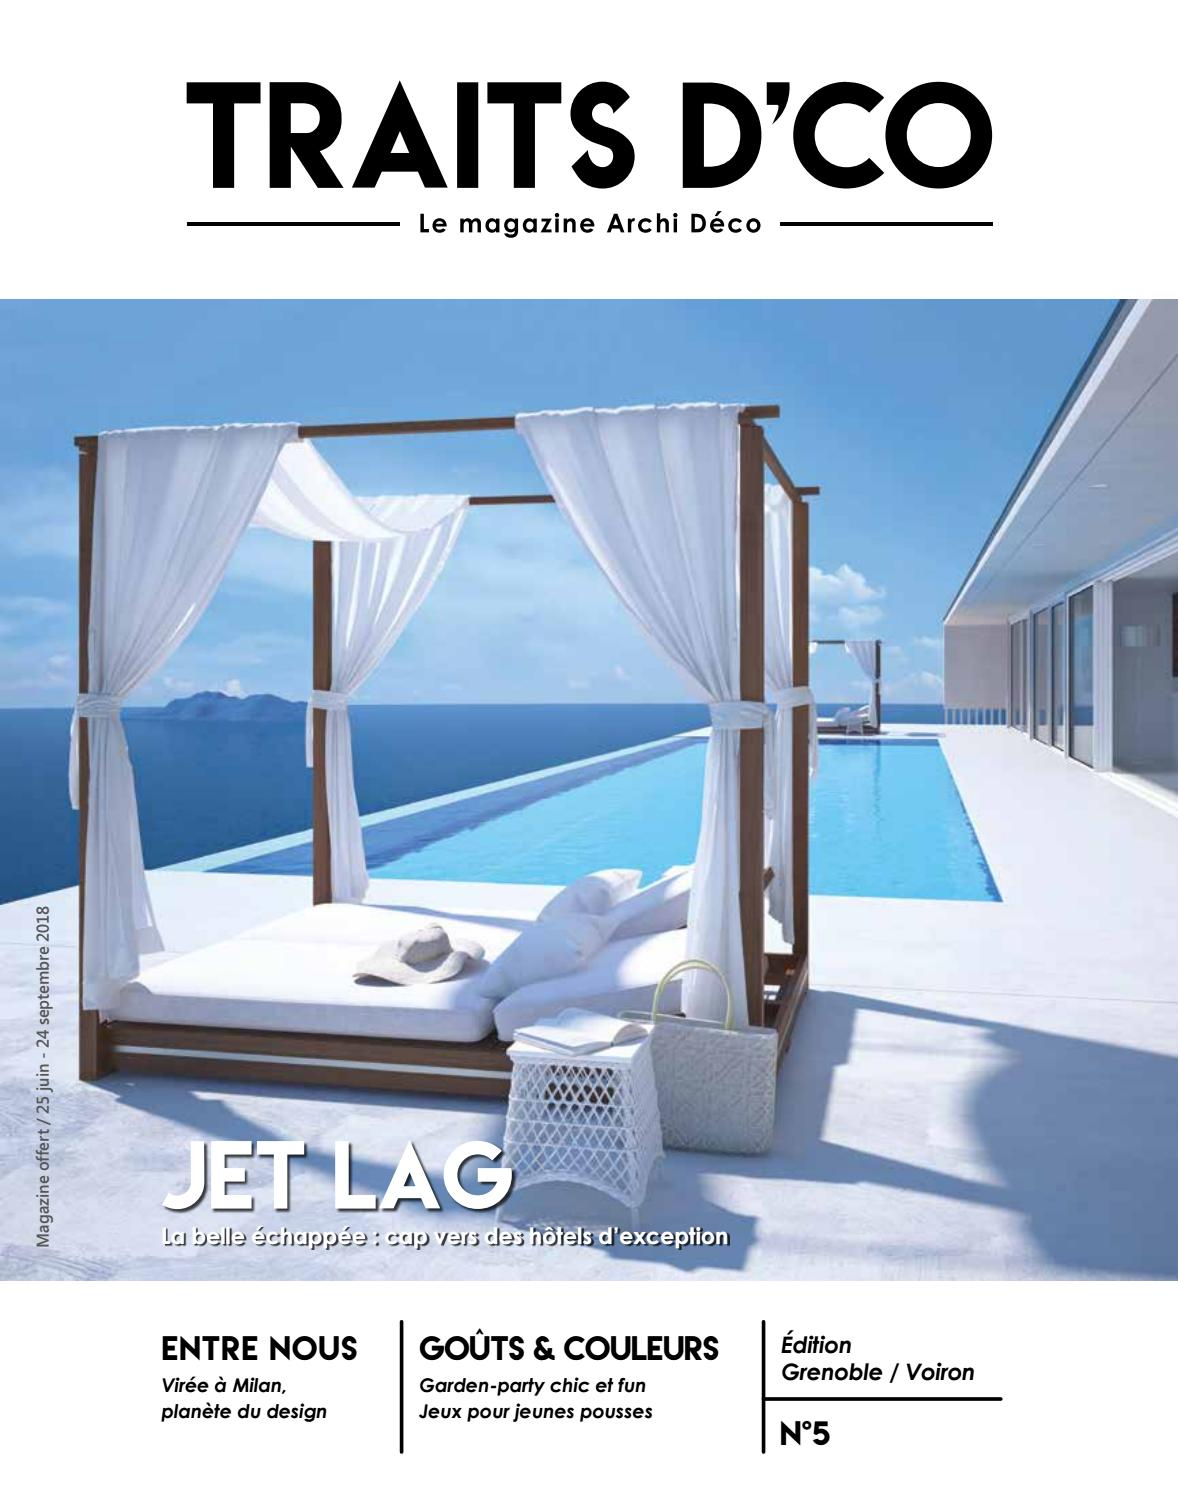 Traits D Co Magazine Grenoble Voiron N5 Juin 2018 By Traits D Co Issuu